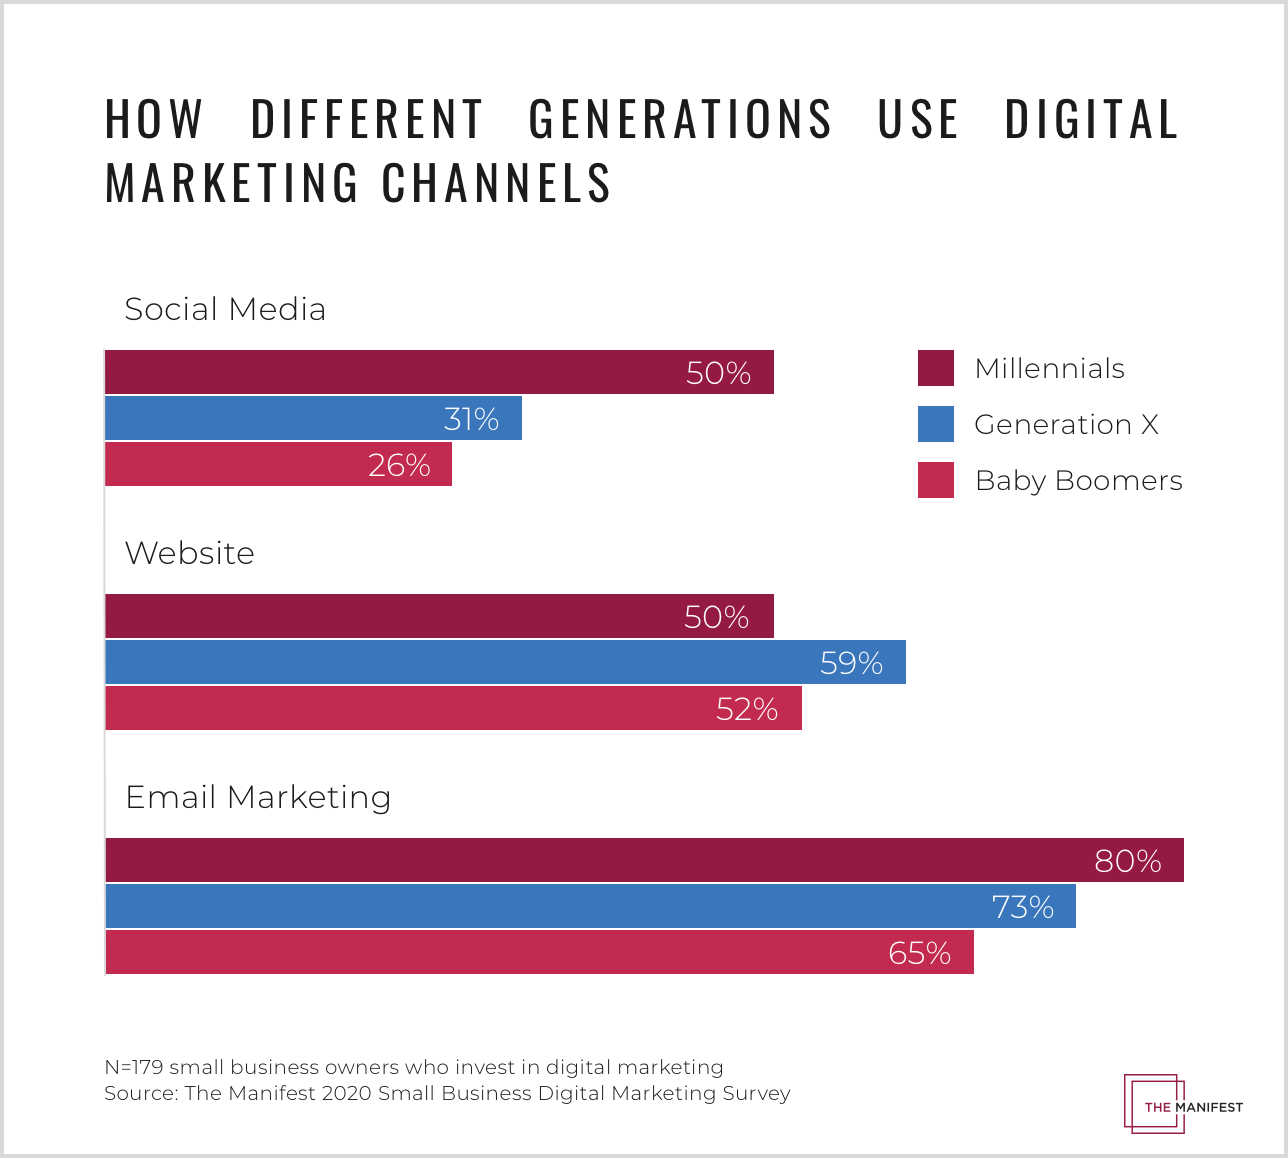 How Different Generations Use Digital Marketing Channels